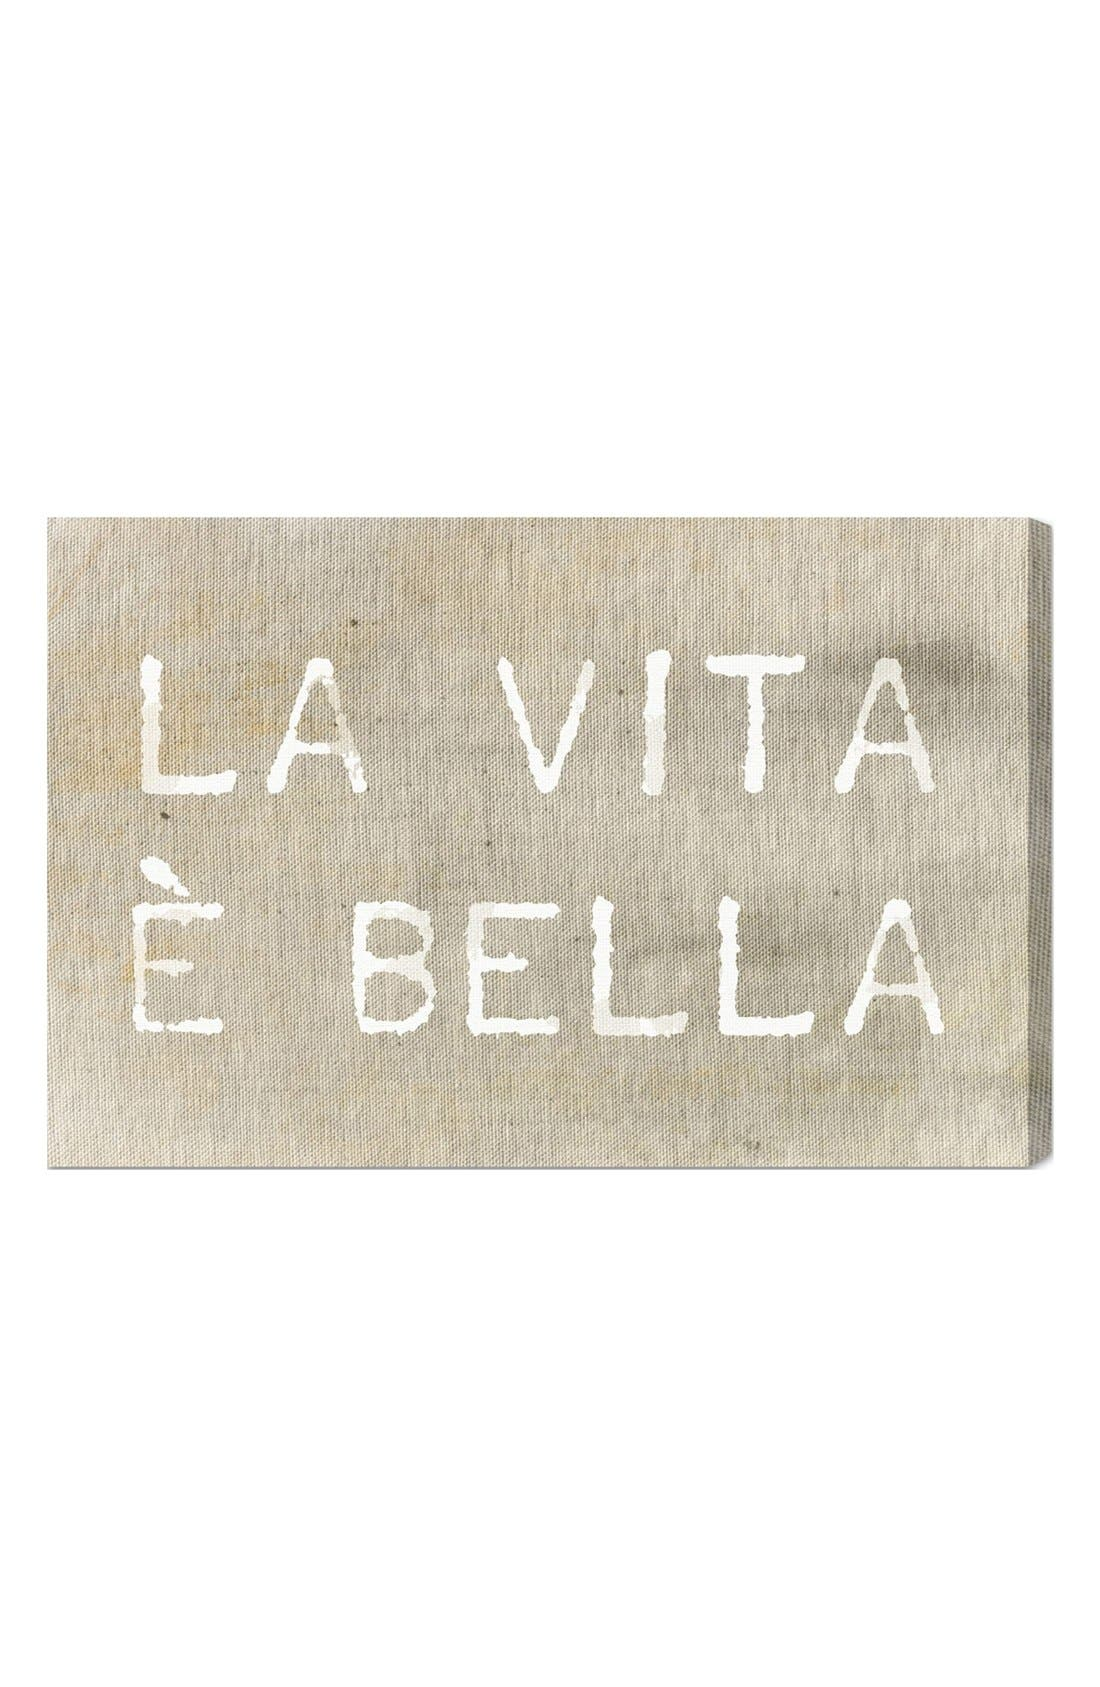 'La Vita È Bella' Wall Art, Main, color, 250